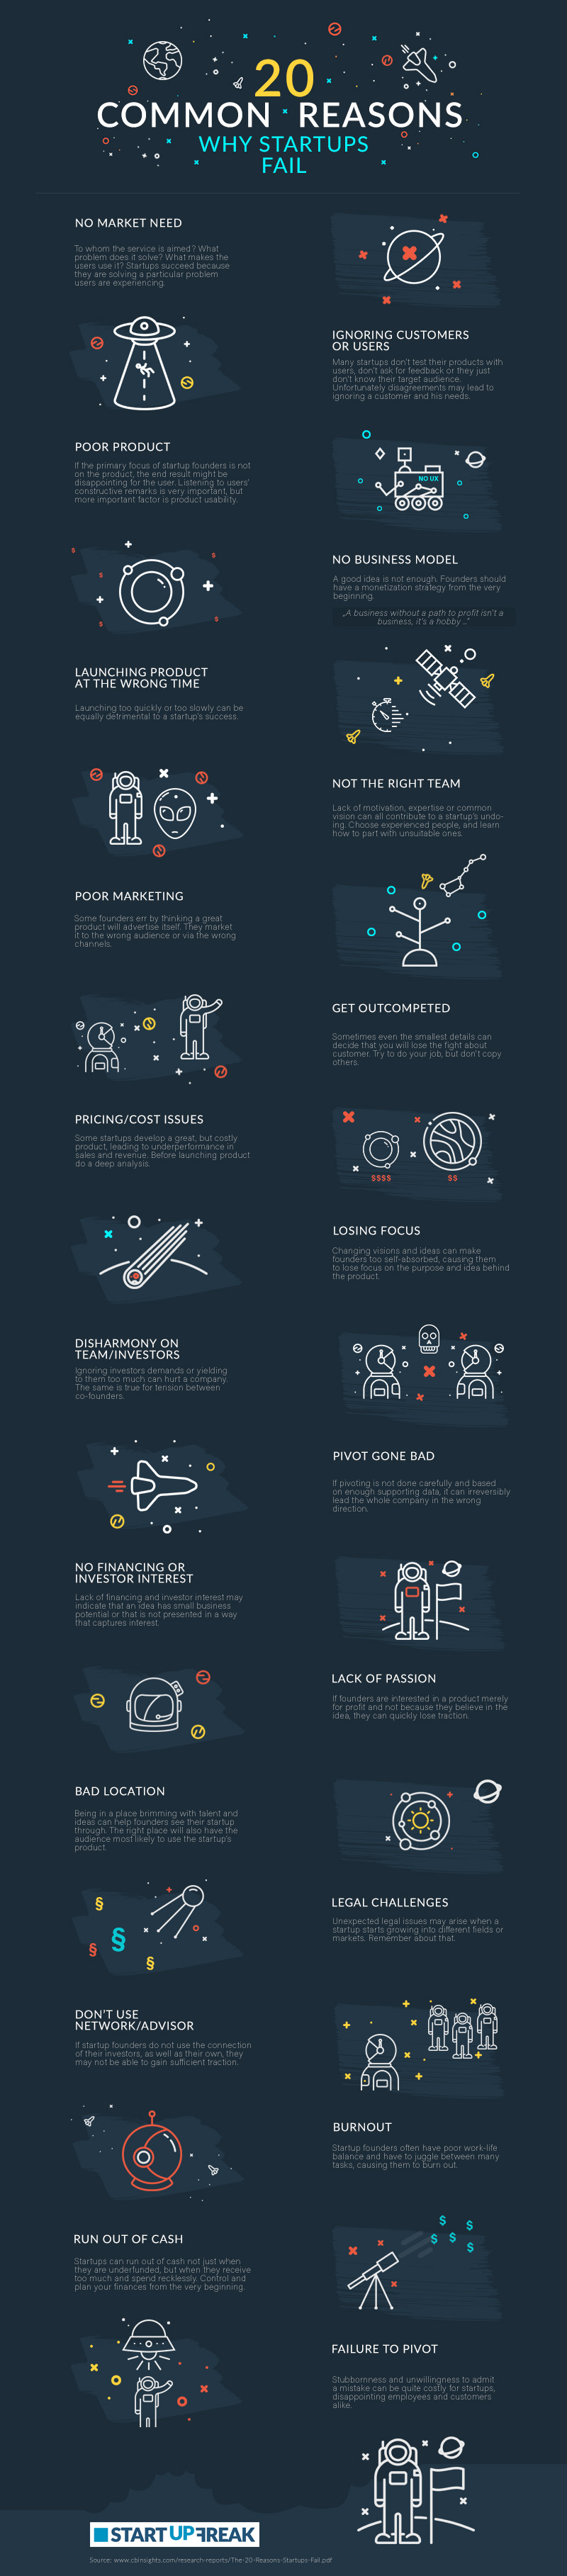 Common Reasons Startups Fail Infographic